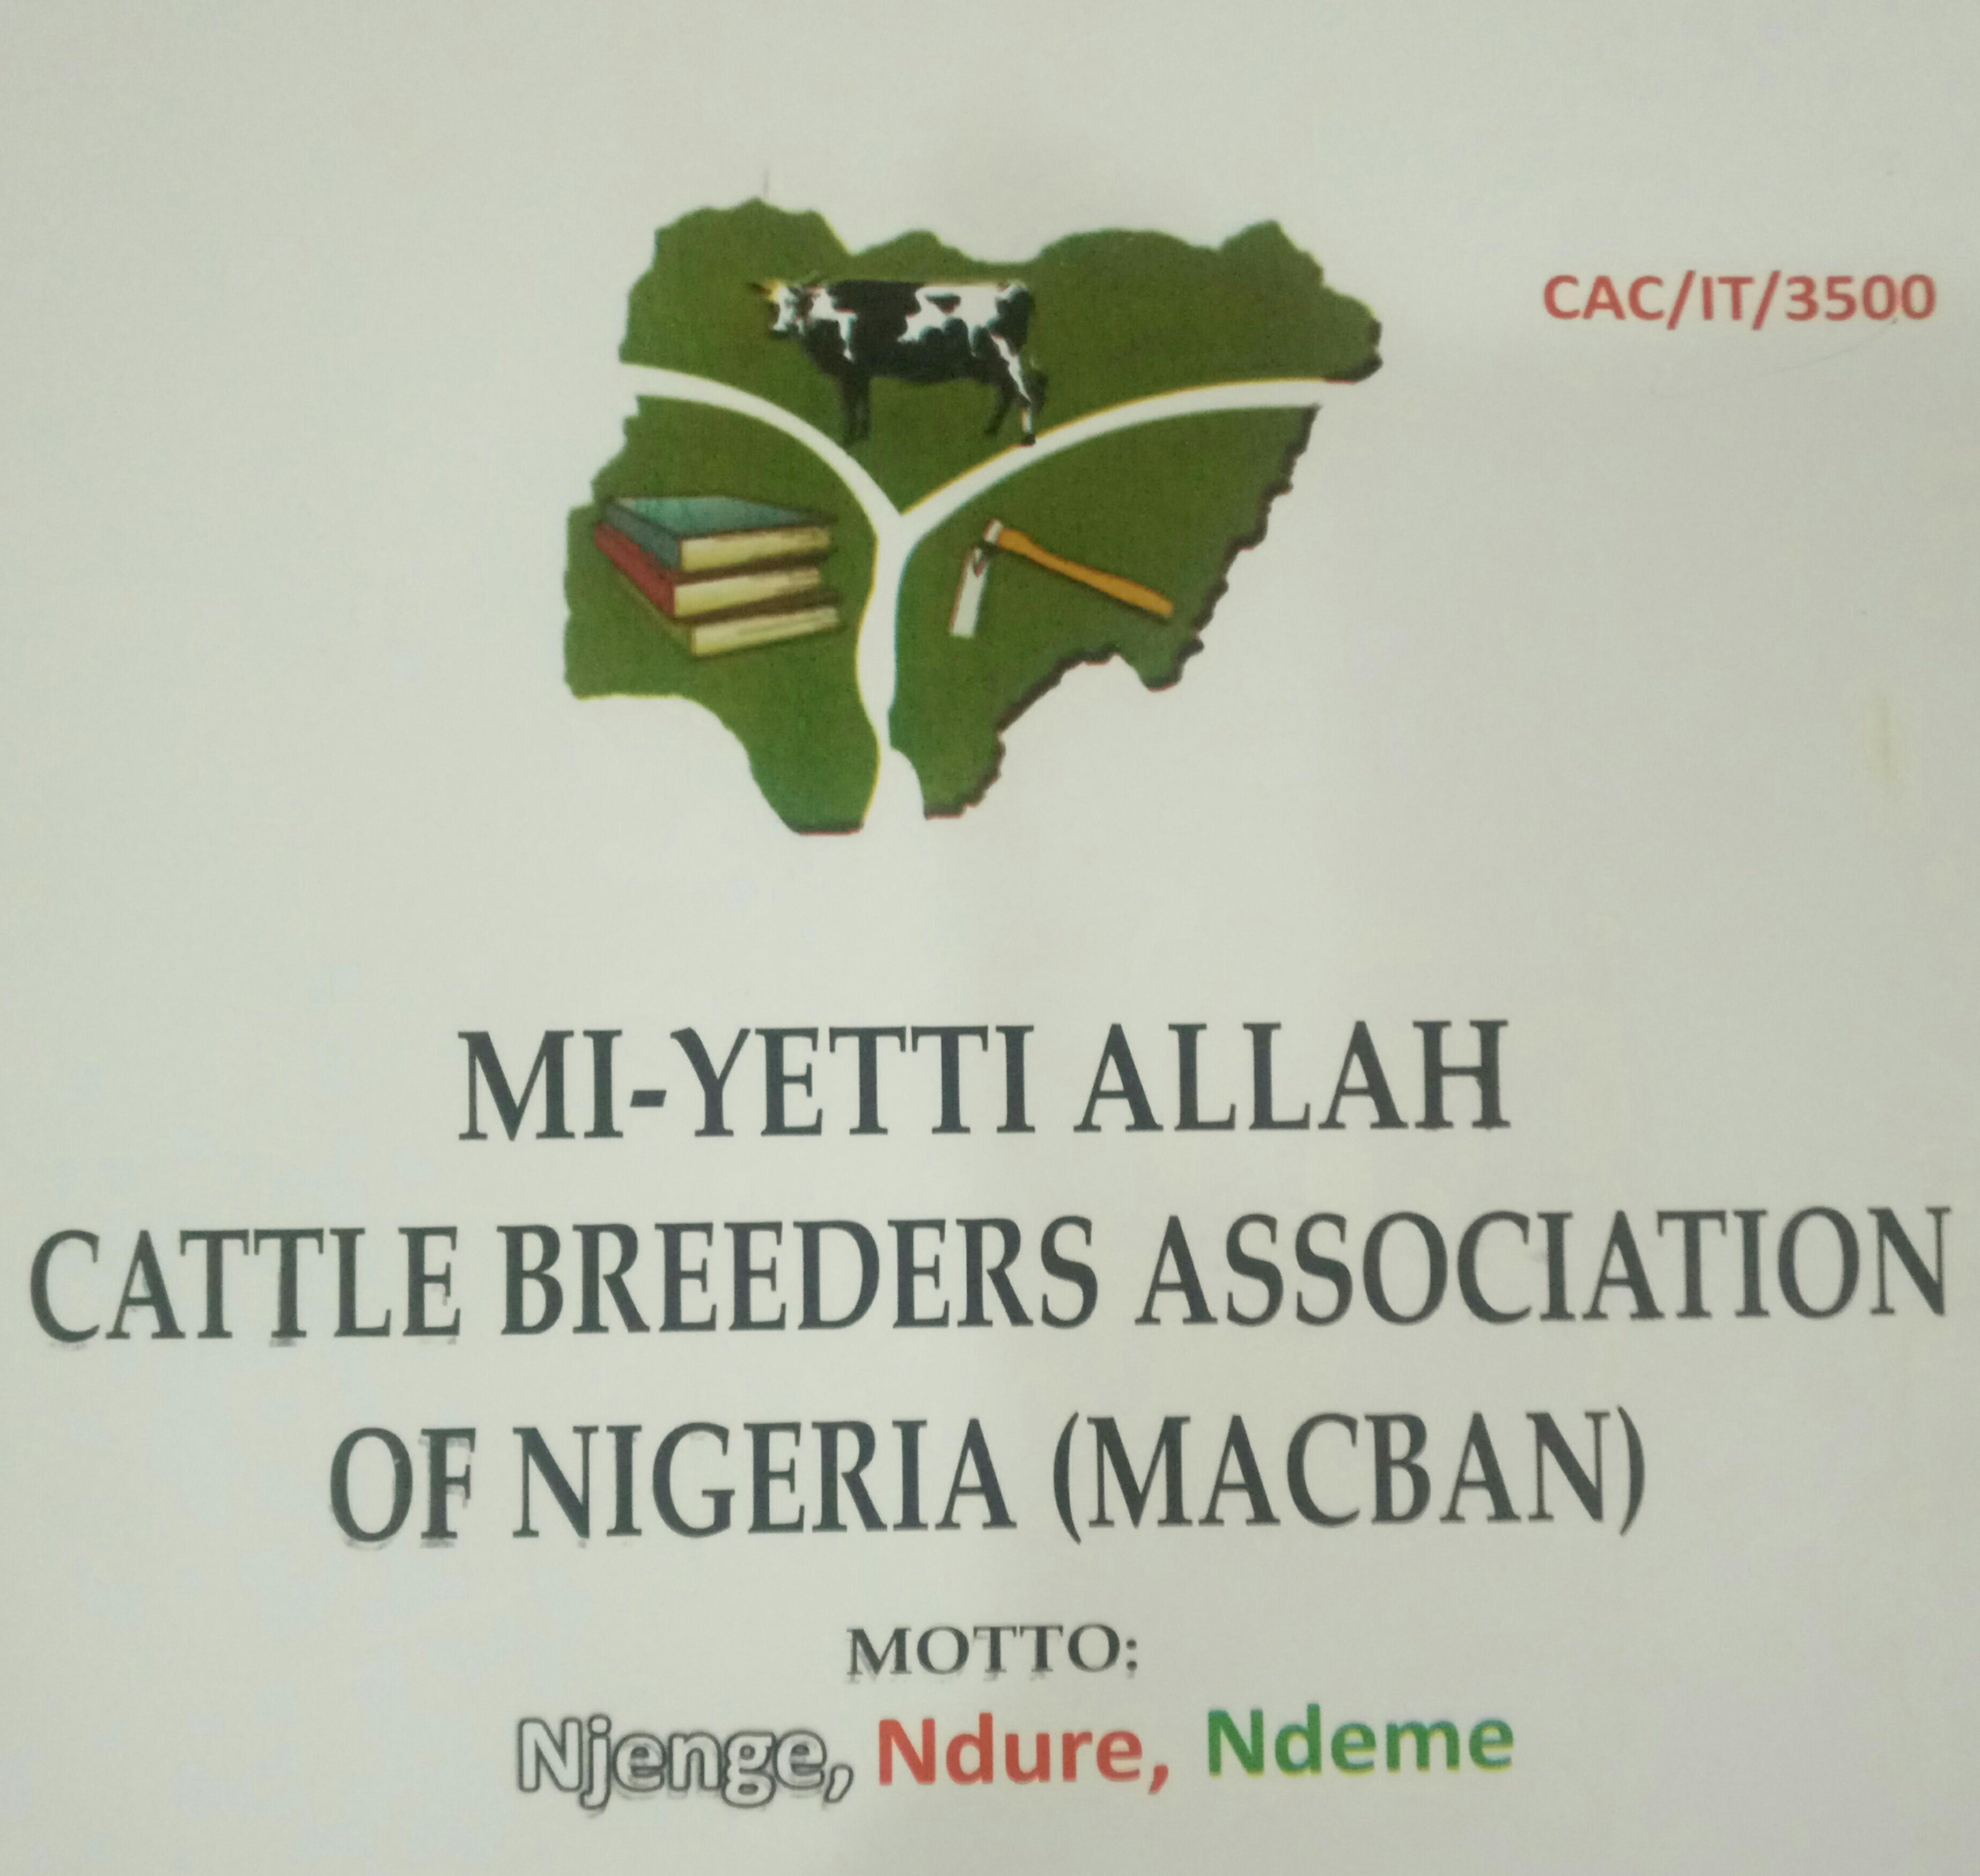 Nigeria, cattle breeders